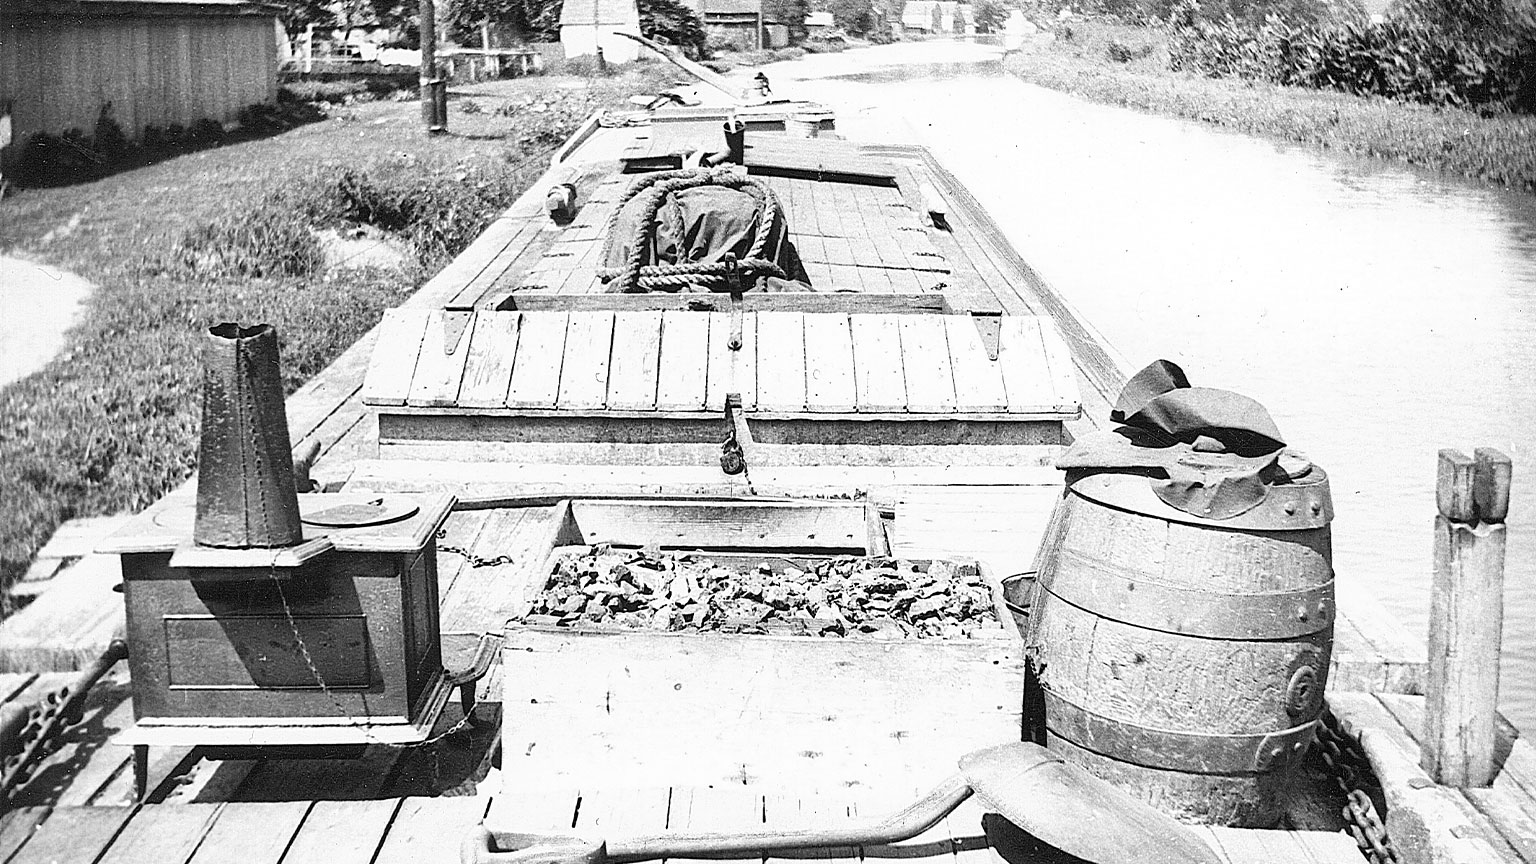 This view of a deck shows you what a deck looked like when the hatches were closed and supplies were loaded onto the deck.